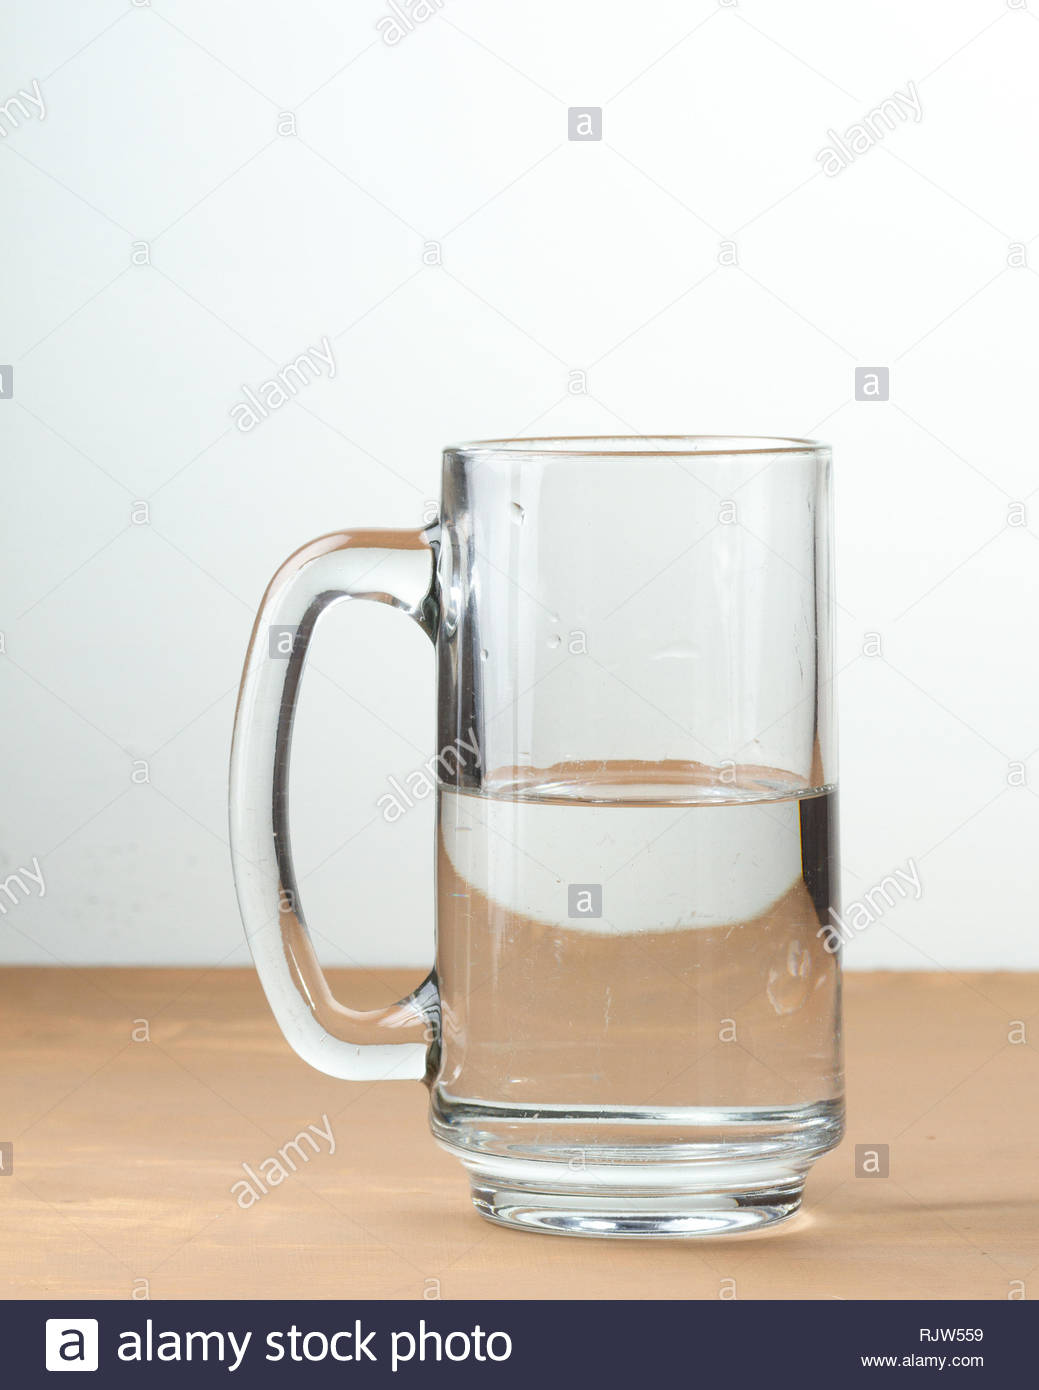 Glass half full of water on white background and wood table - Stock Image